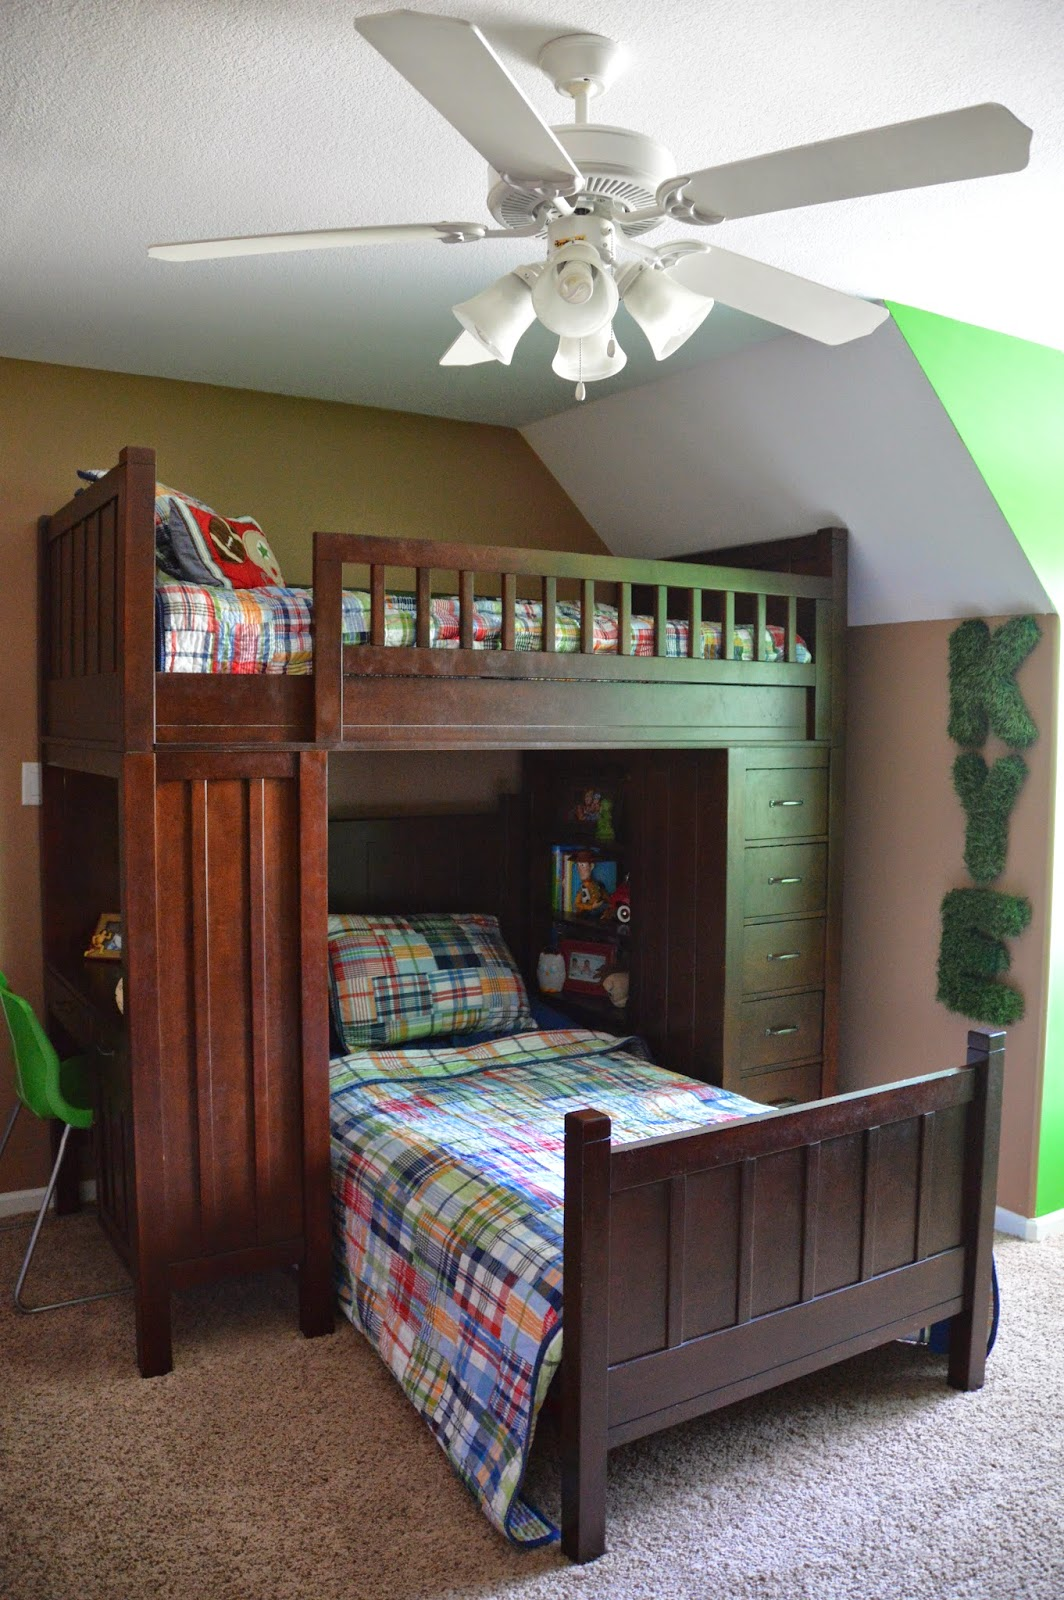 New For The Bedroom For Him The Journey Of Parenthood Tour Of Our Home Kyes Football Room